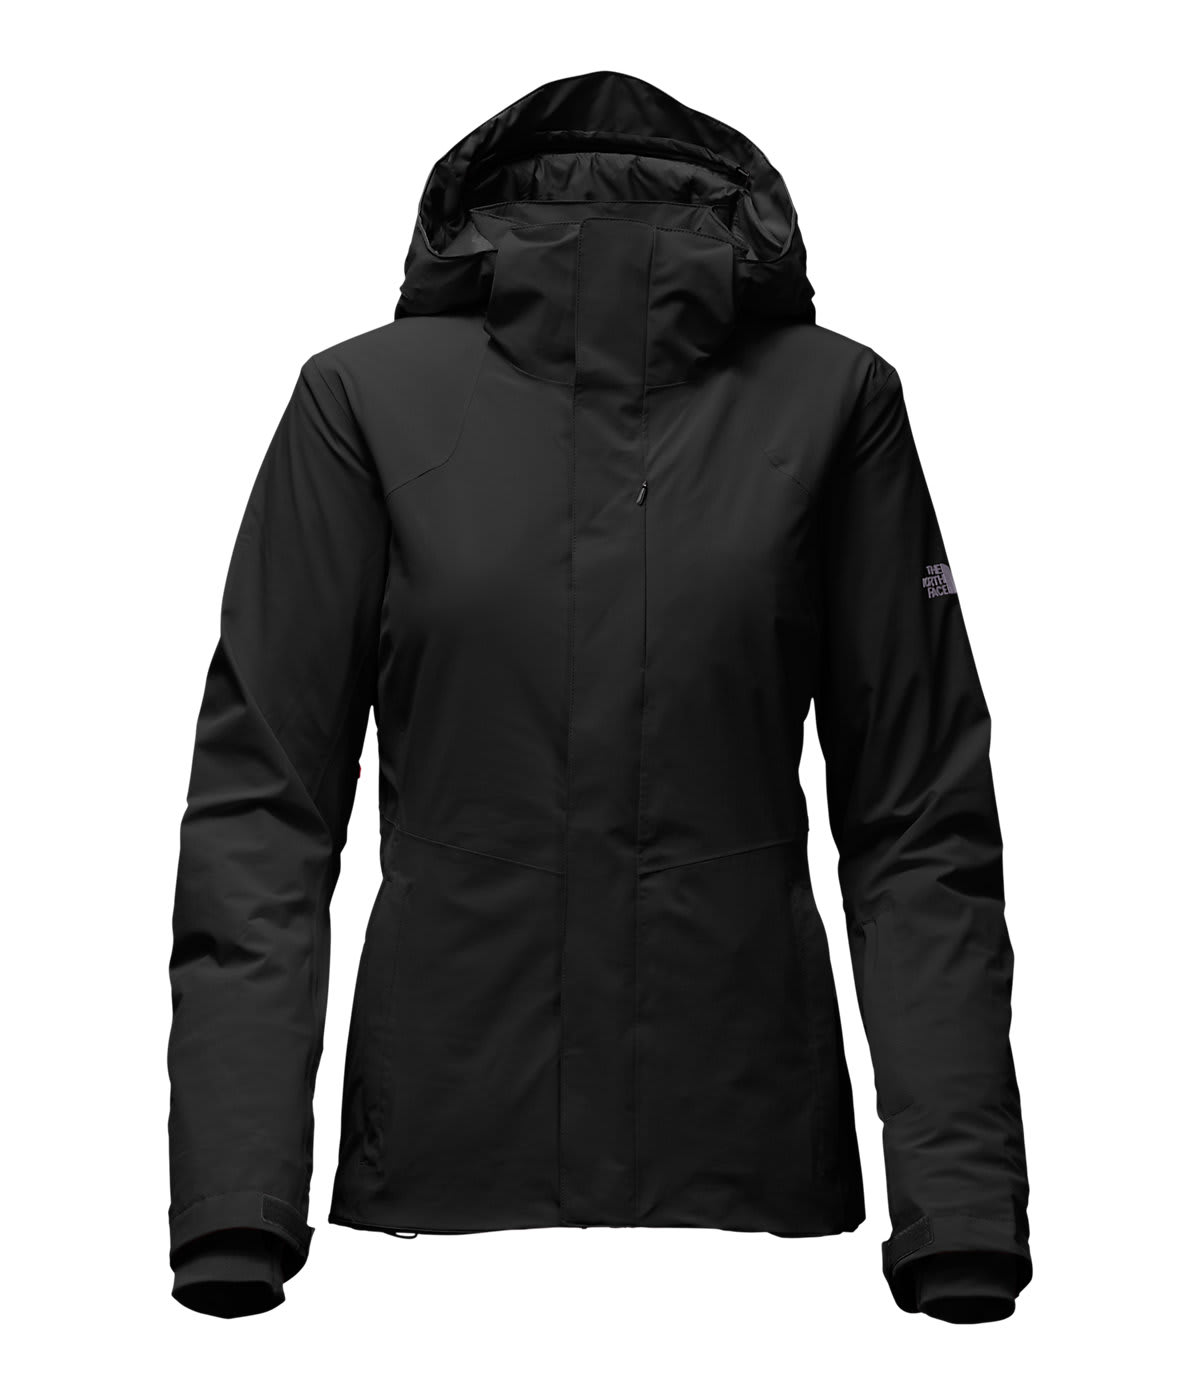 Womens north face winter jackets clearance